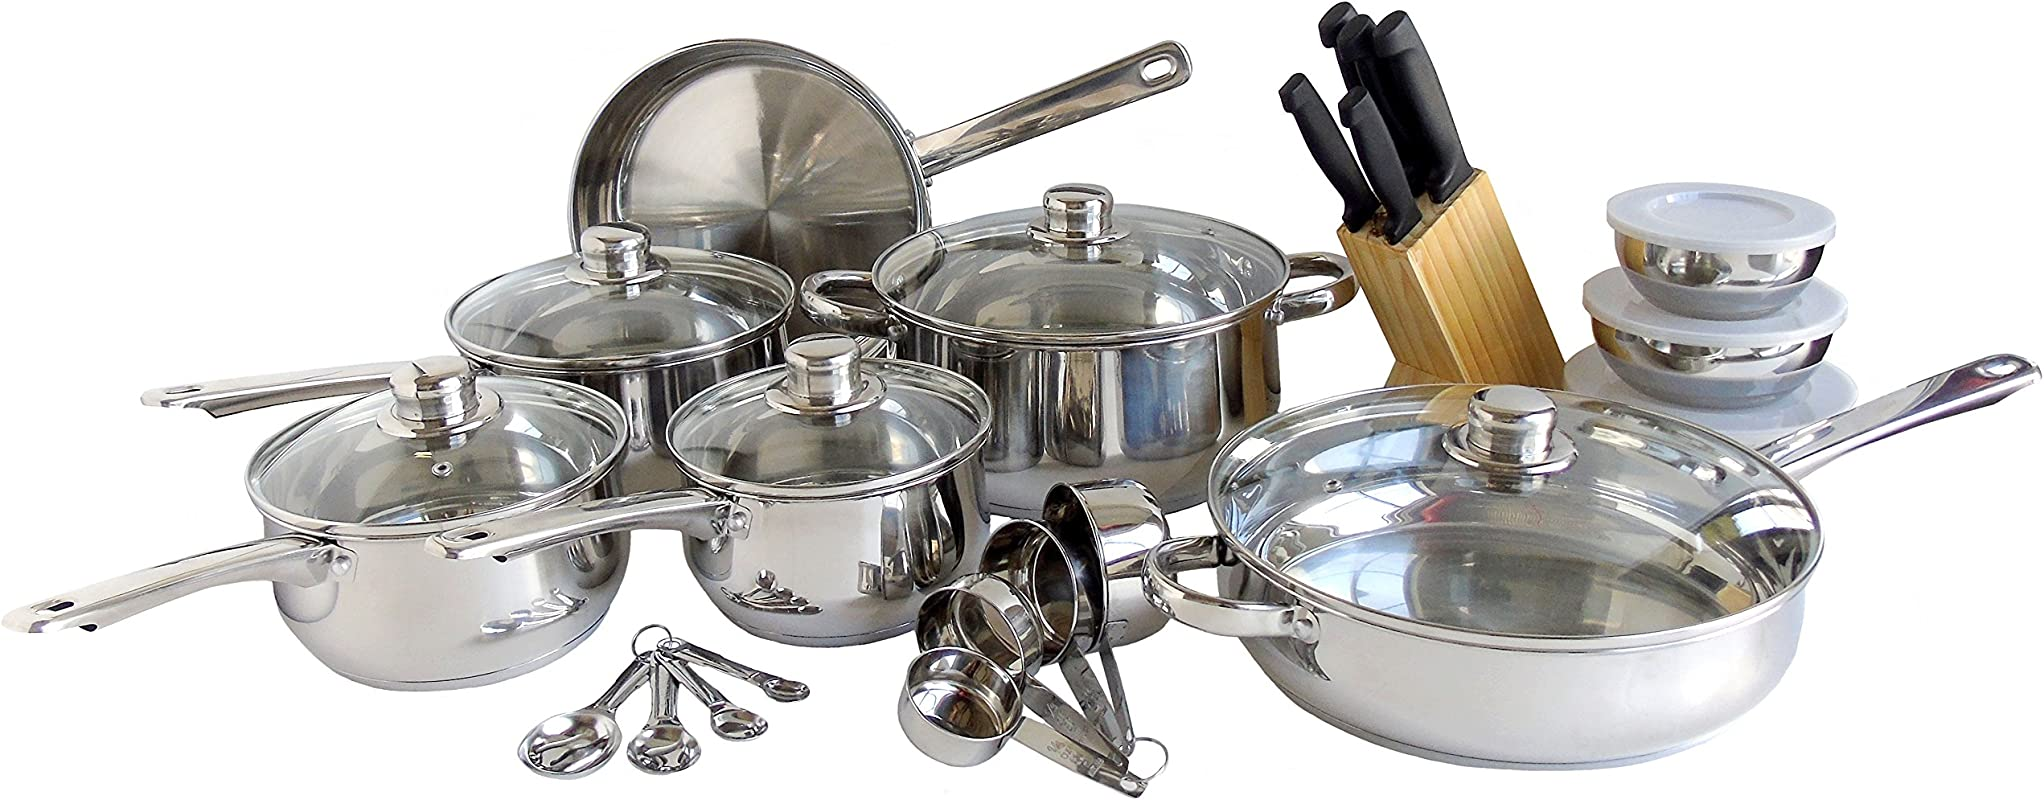 Freedom Stainless Steel Silver Kitchen Cookware Set Pots And Pans 31 Piece